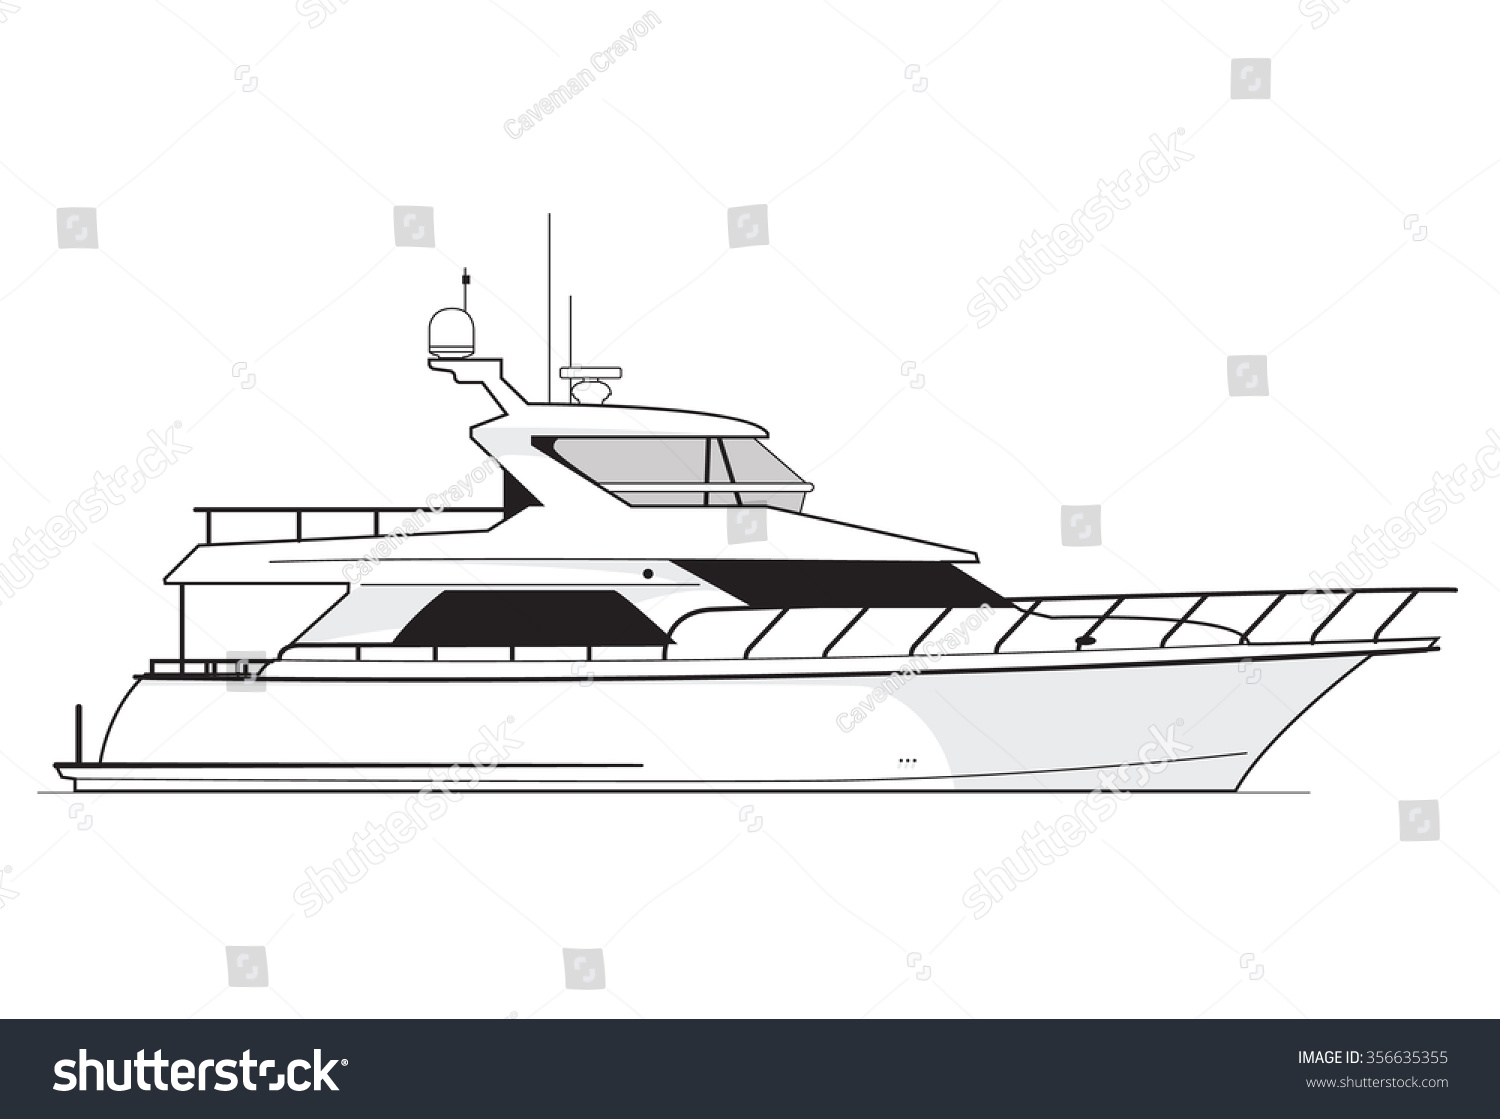 Art Line Quality : High quality side view line drawing stock vector